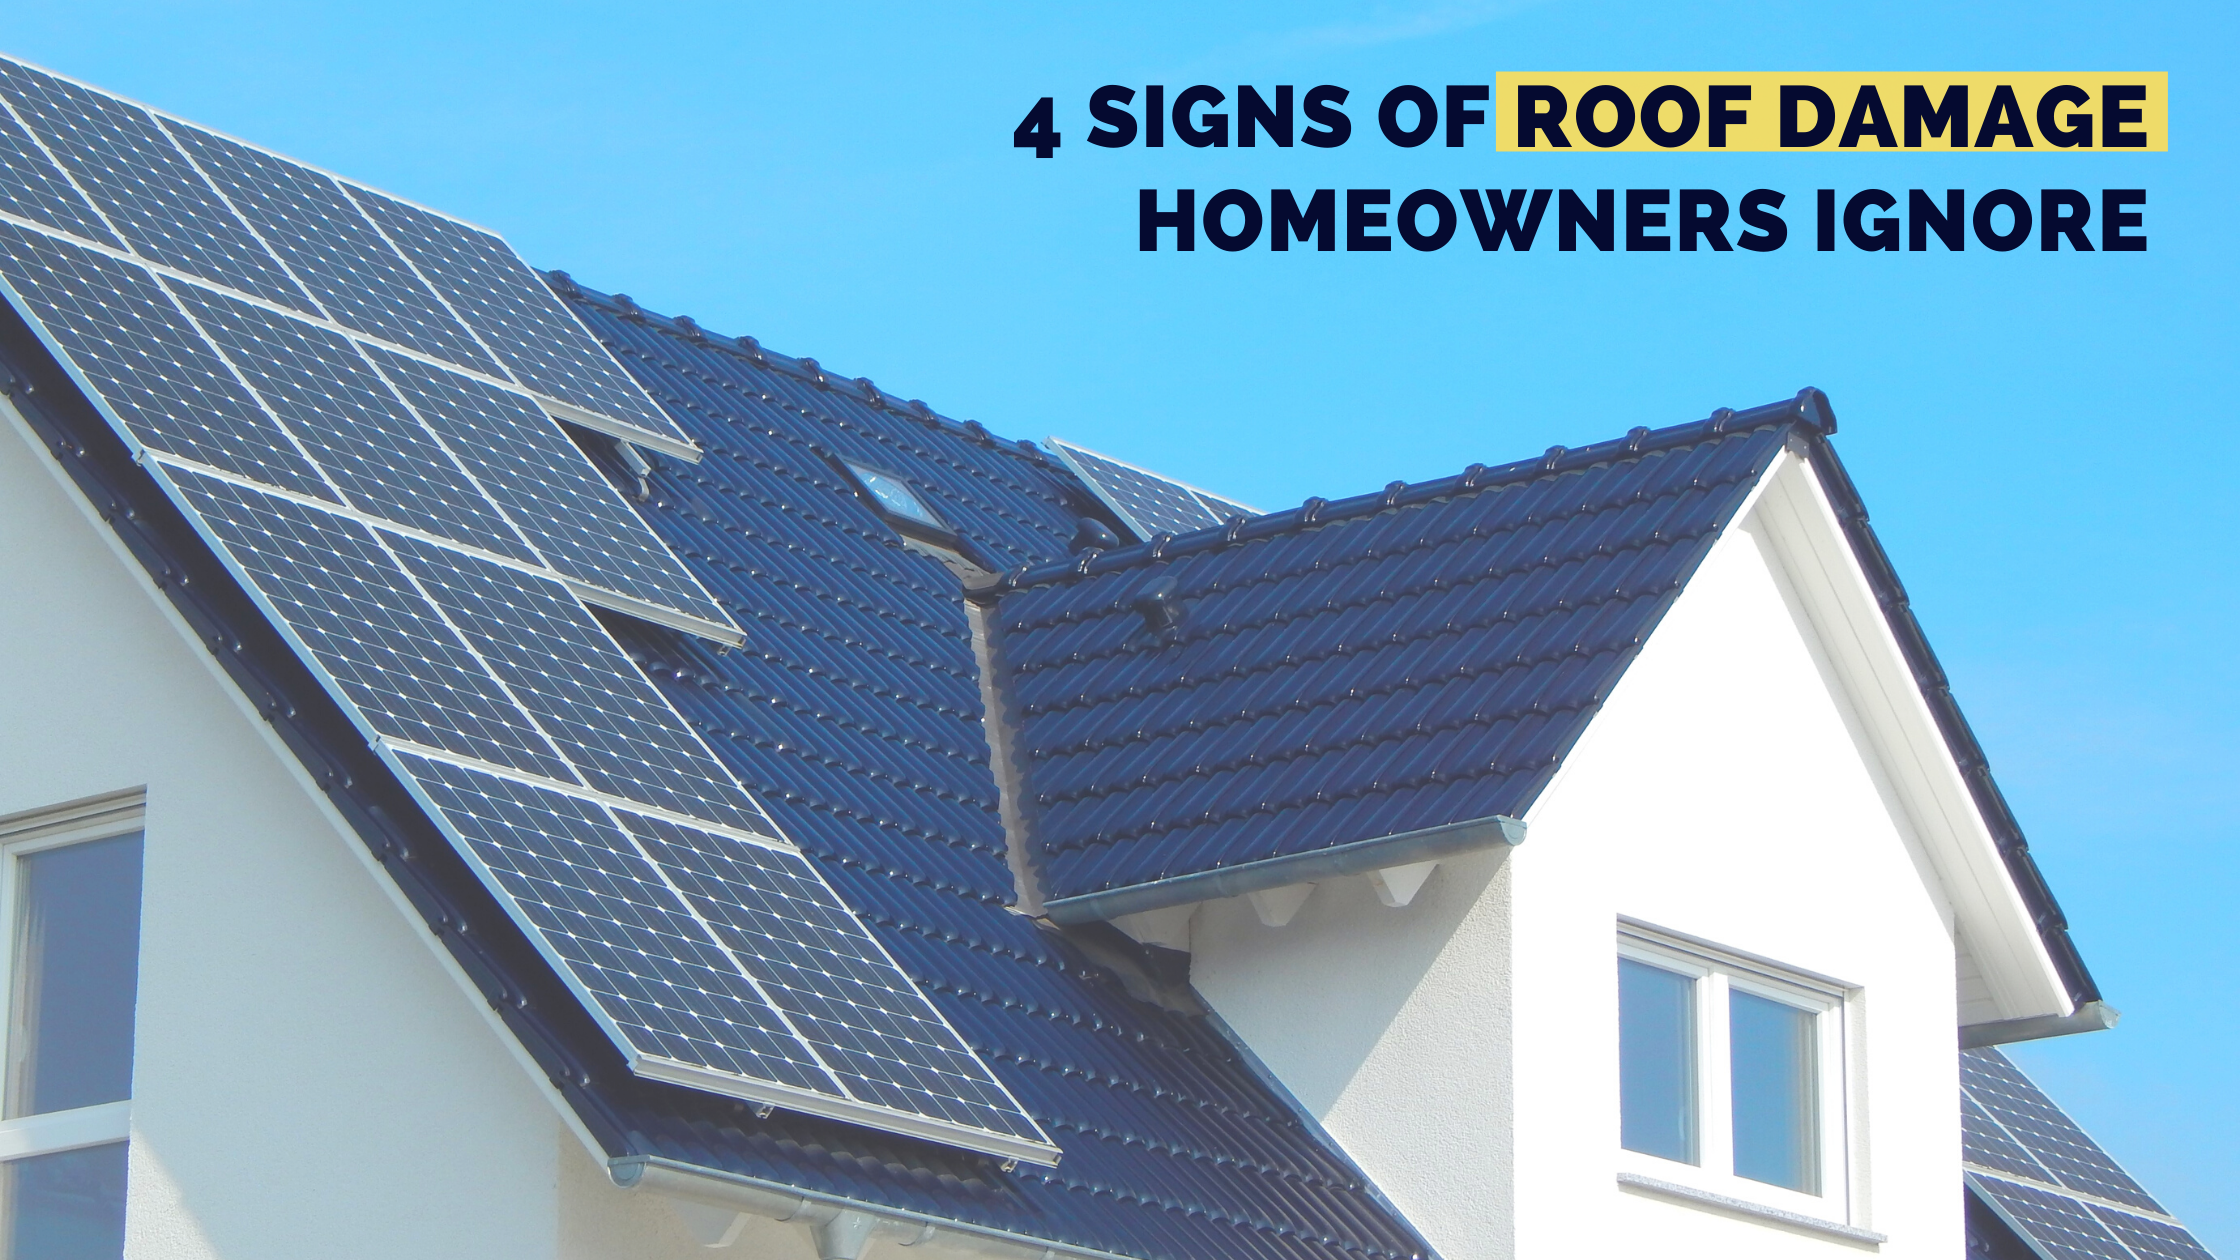 4 Signs of Roof Damage Homeowners Ignore